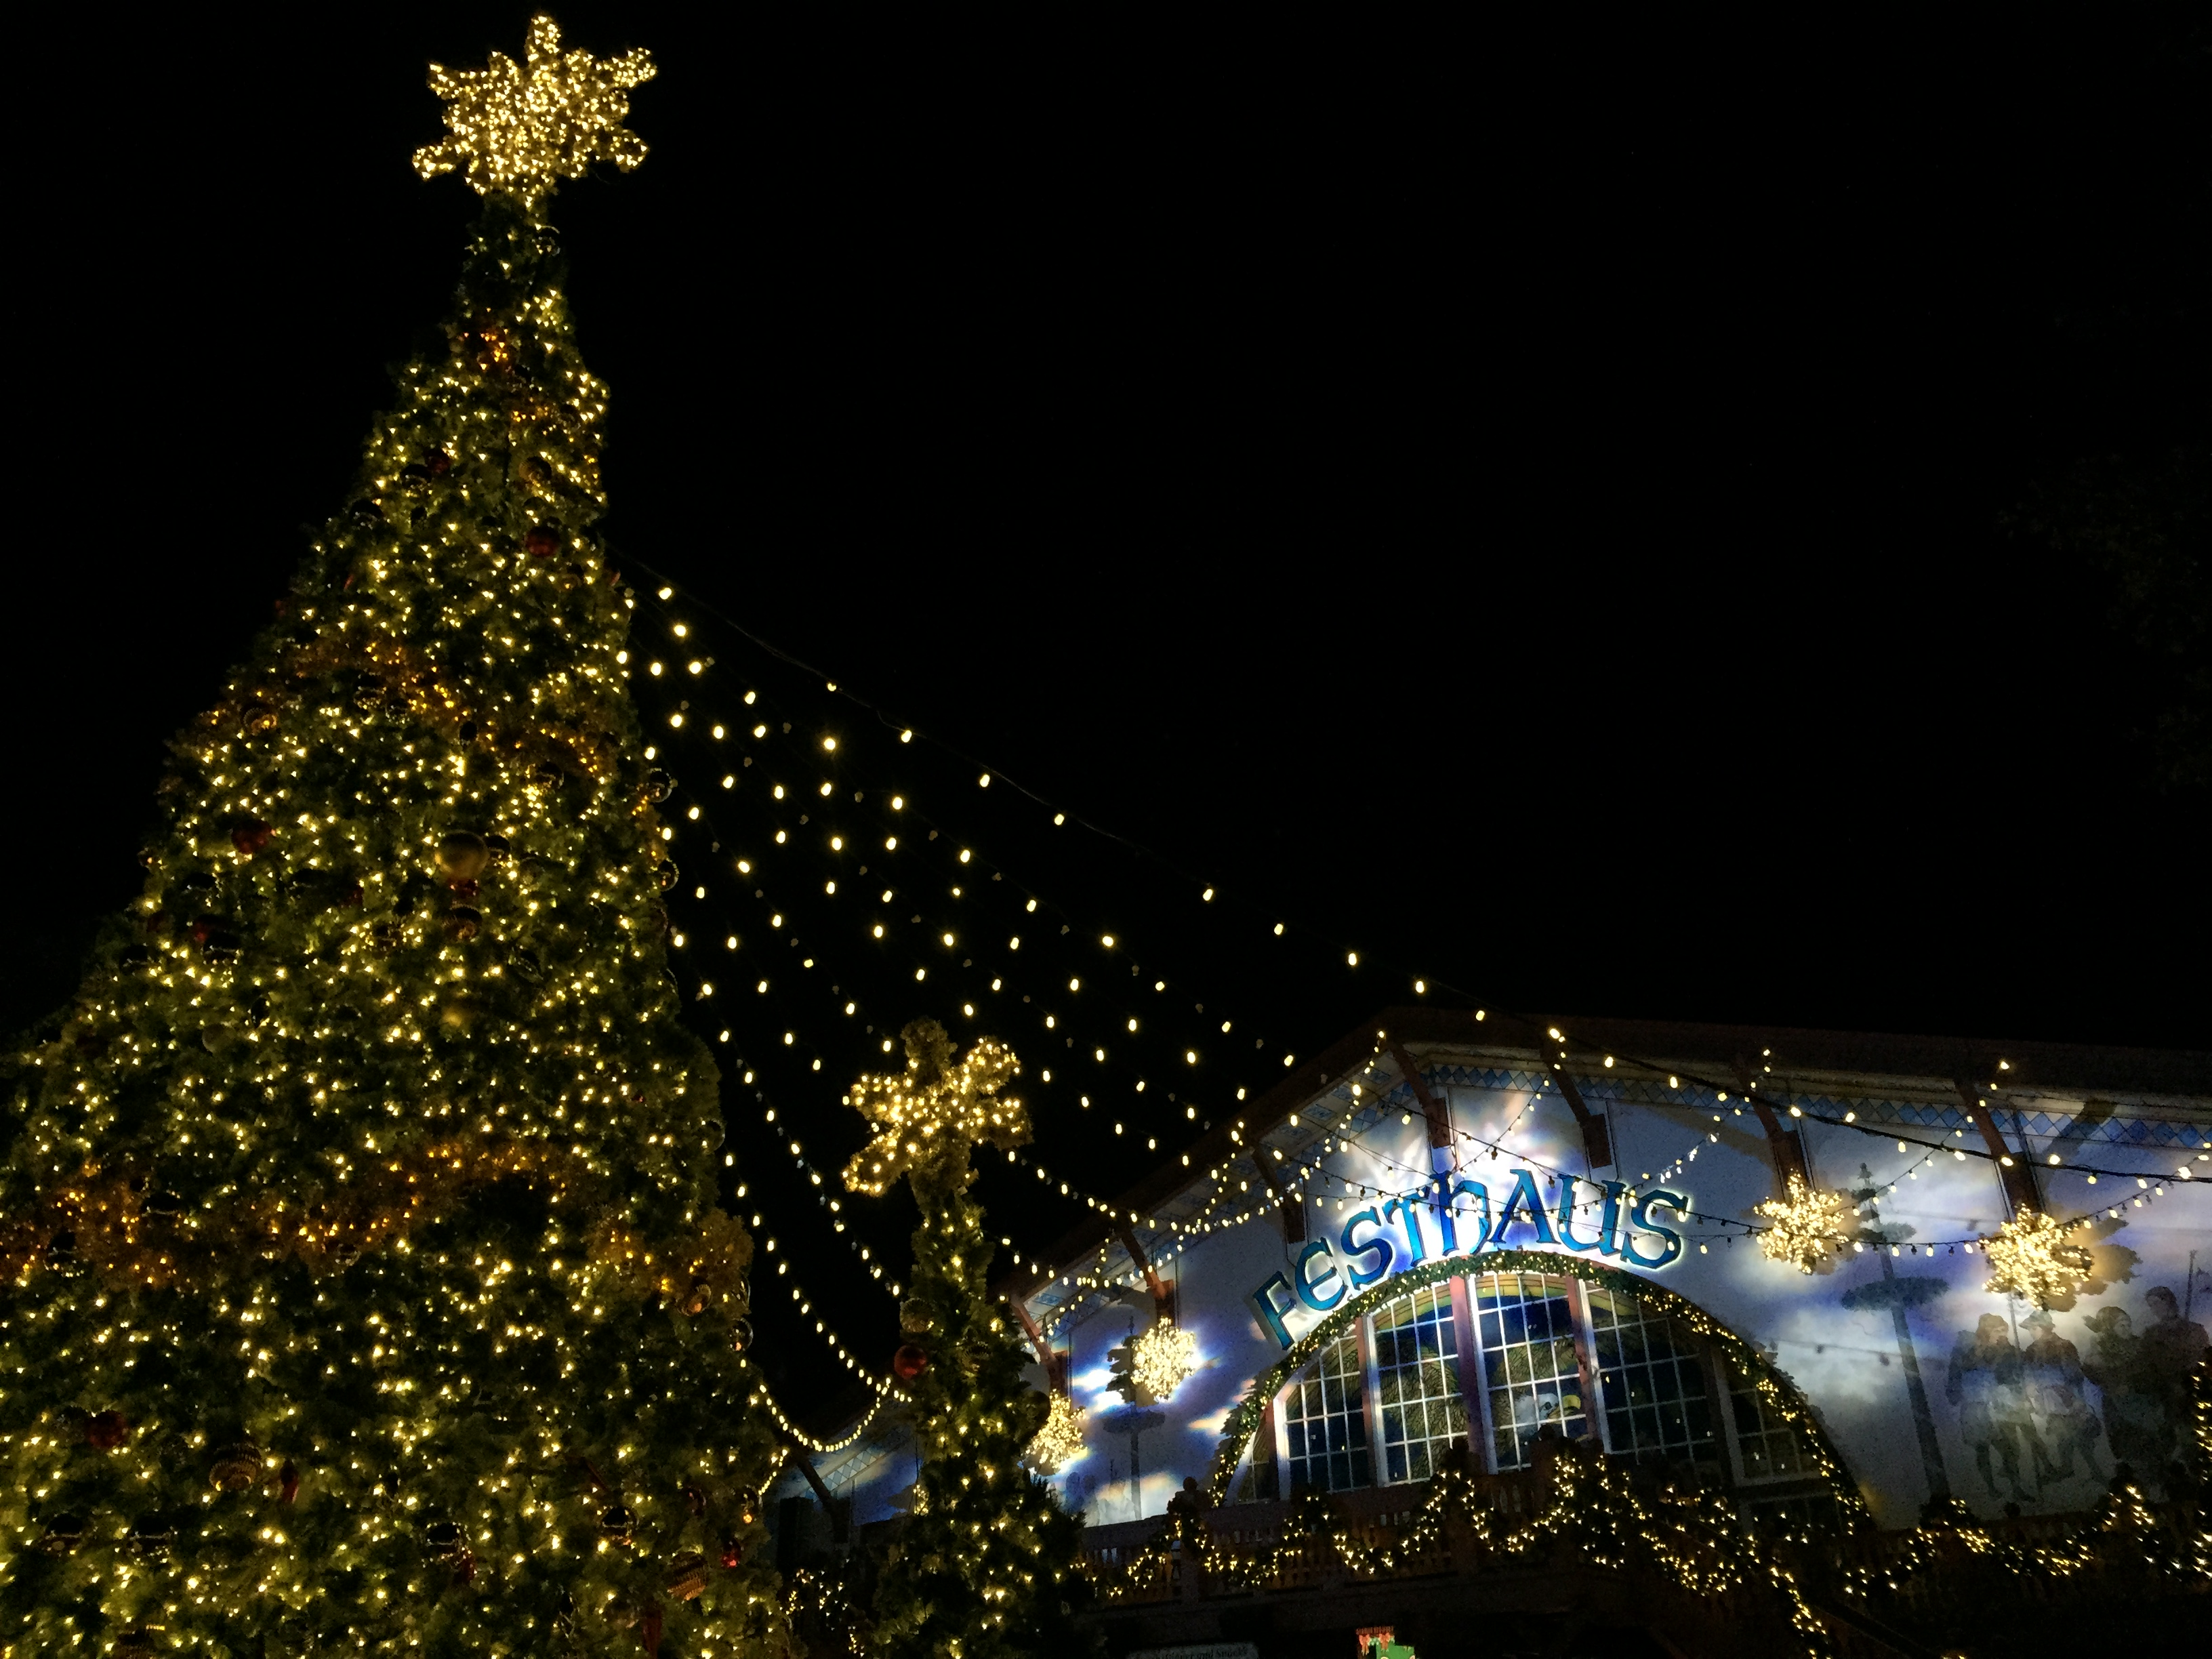 File:50-Foot Tall Christmas Tree With Das Festhaus In The